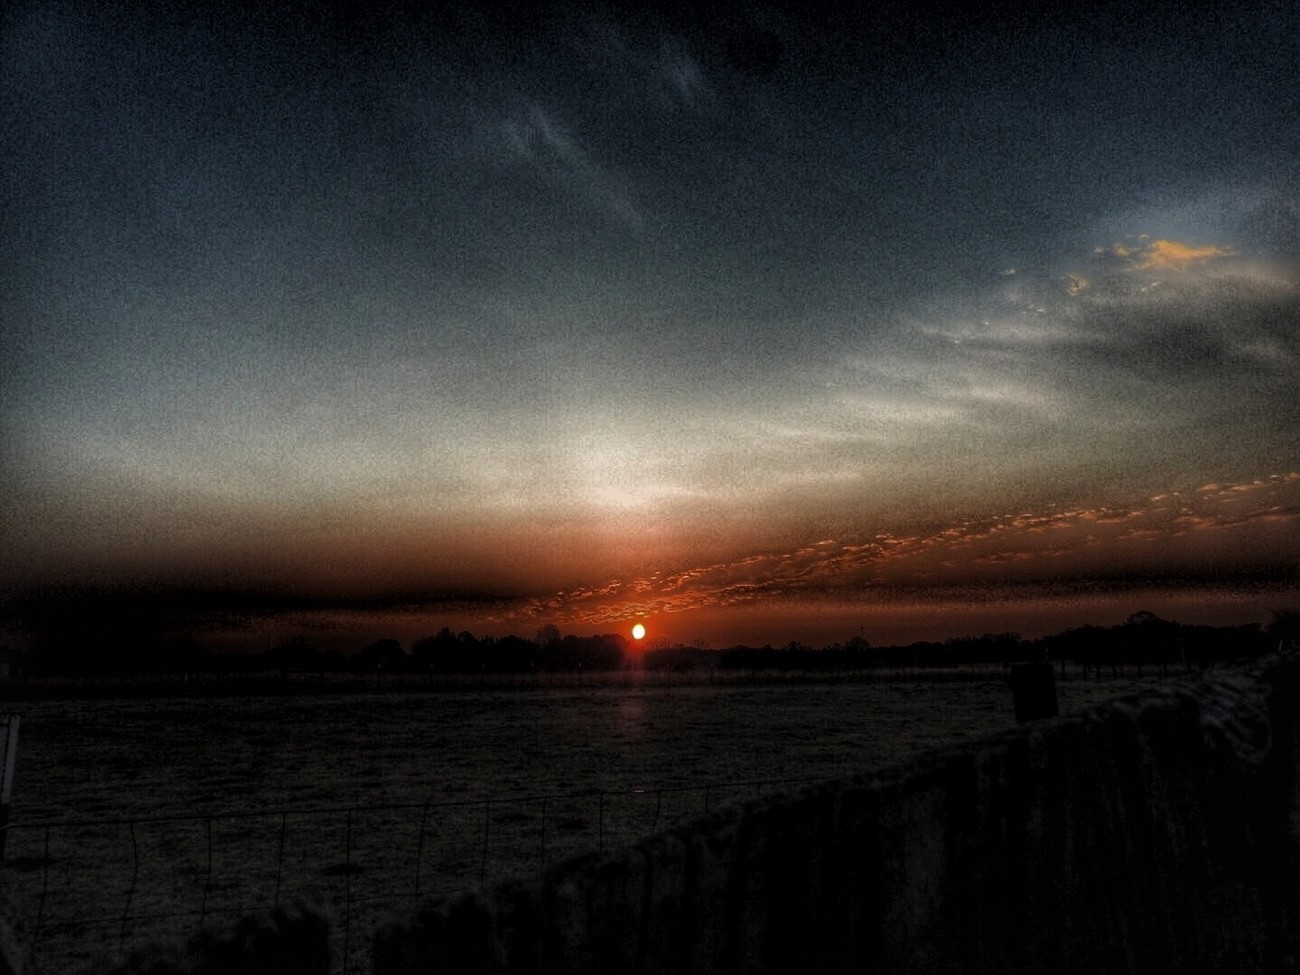 Captured the sun as it started to rise on the horizon